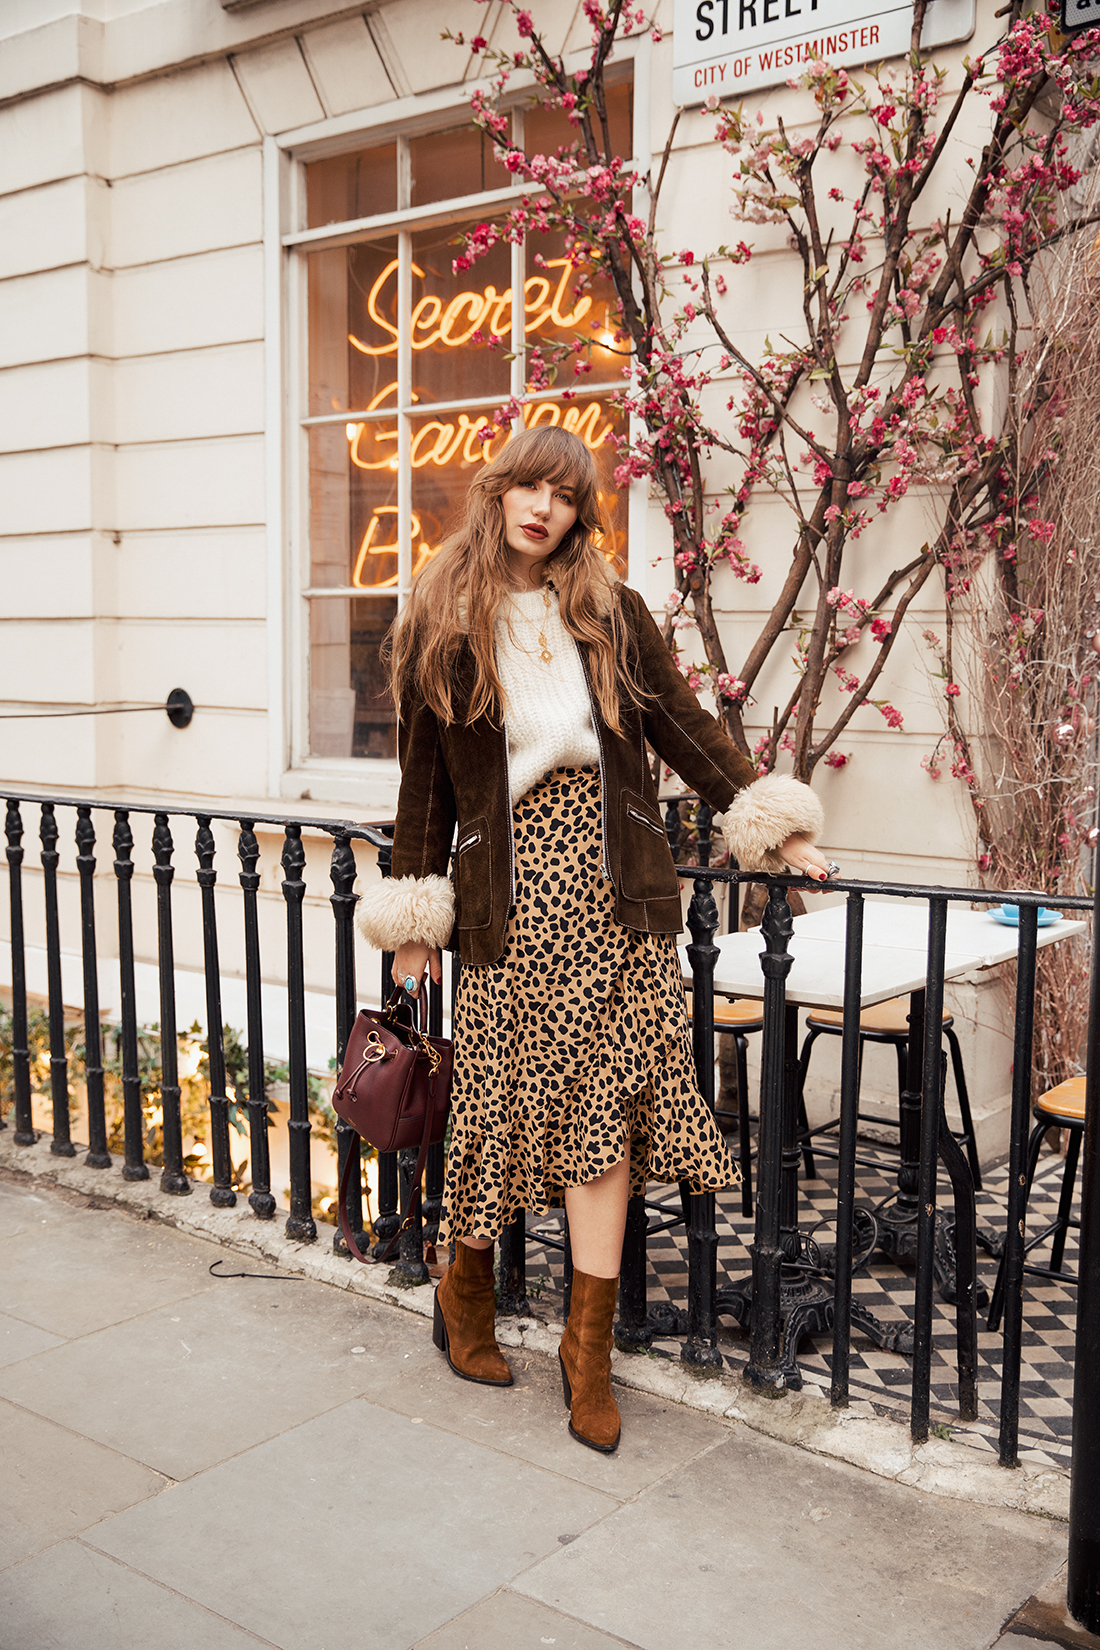 Autumnal Sara Louise blogger photoshoot in front of neon sign by London photographer Ailera Stone